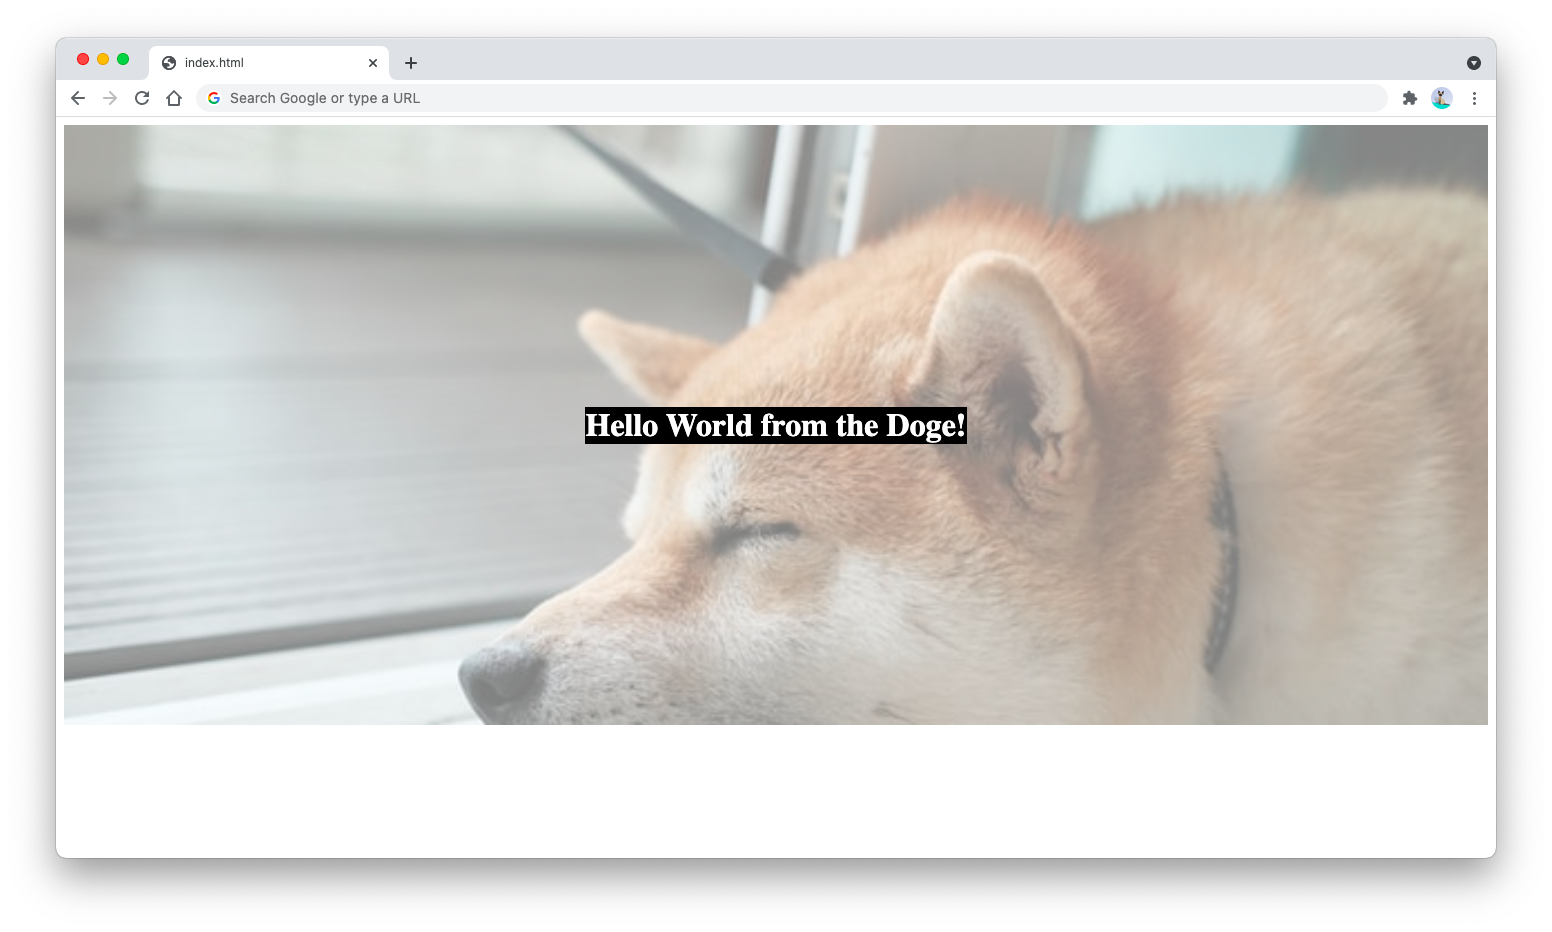 How to change background image opacity using CSS